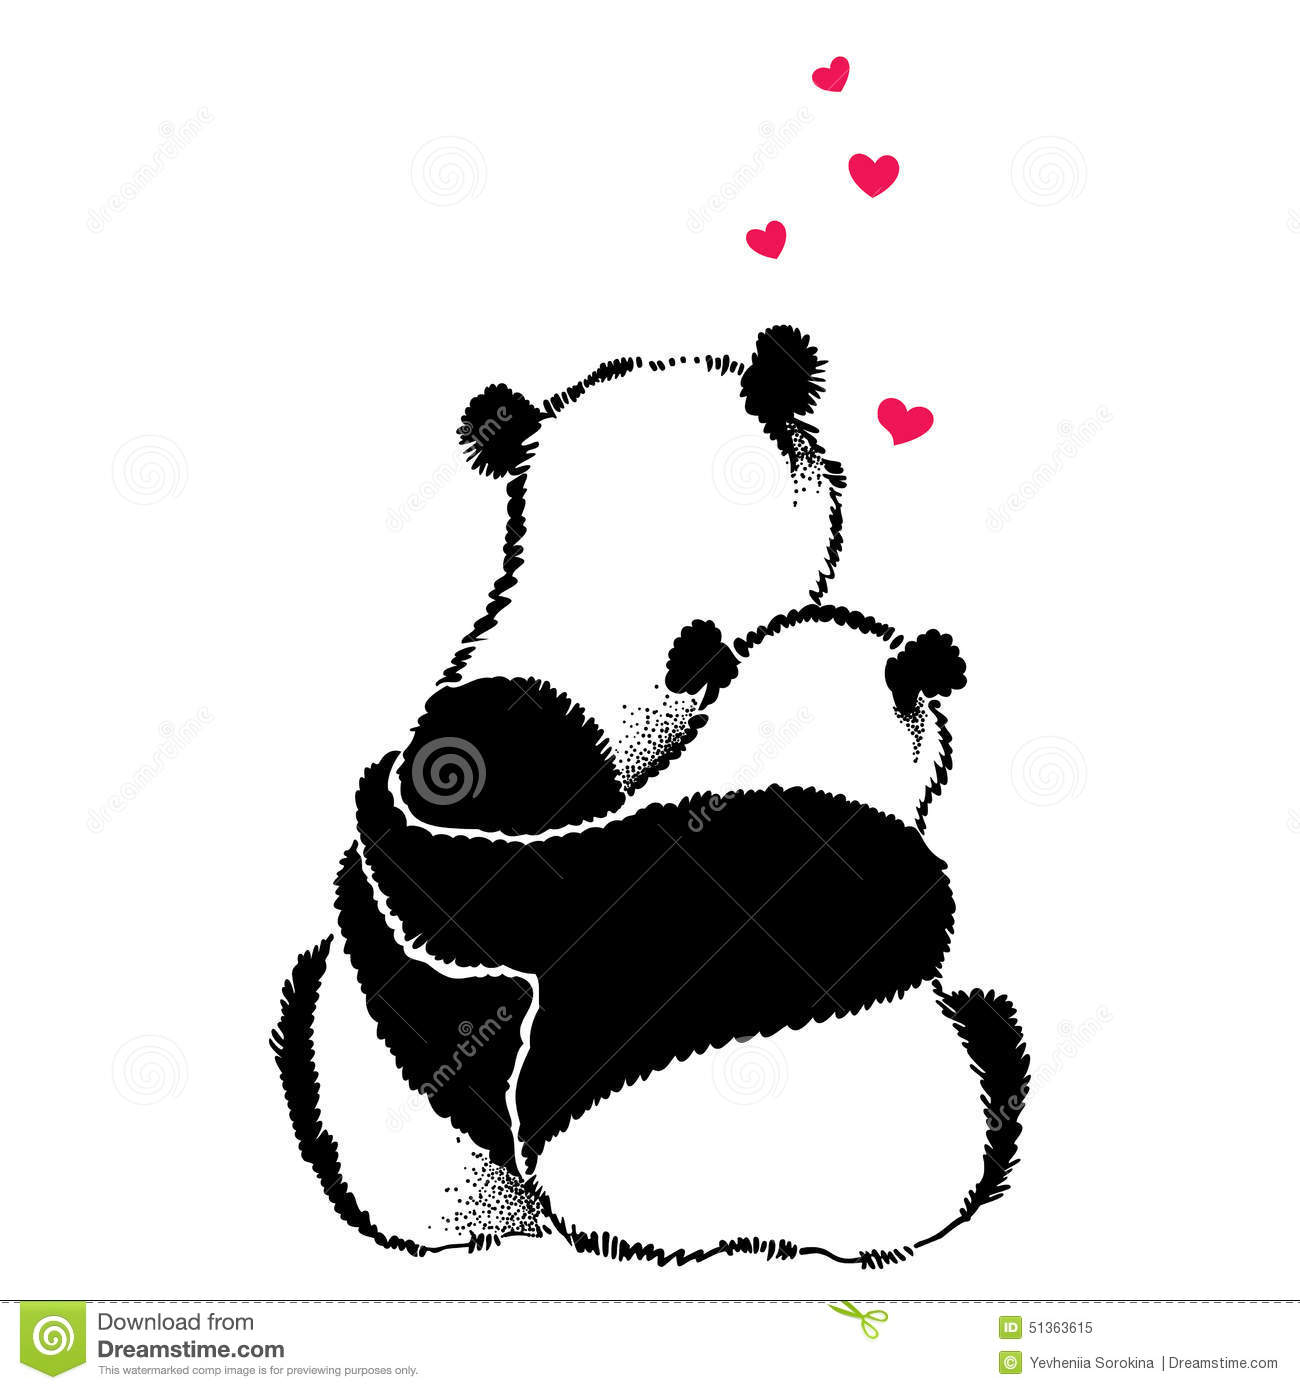 Cute Teddy Pics For Wallpaper Hand Drawn Illustration Of Panda Couple In Love Stock